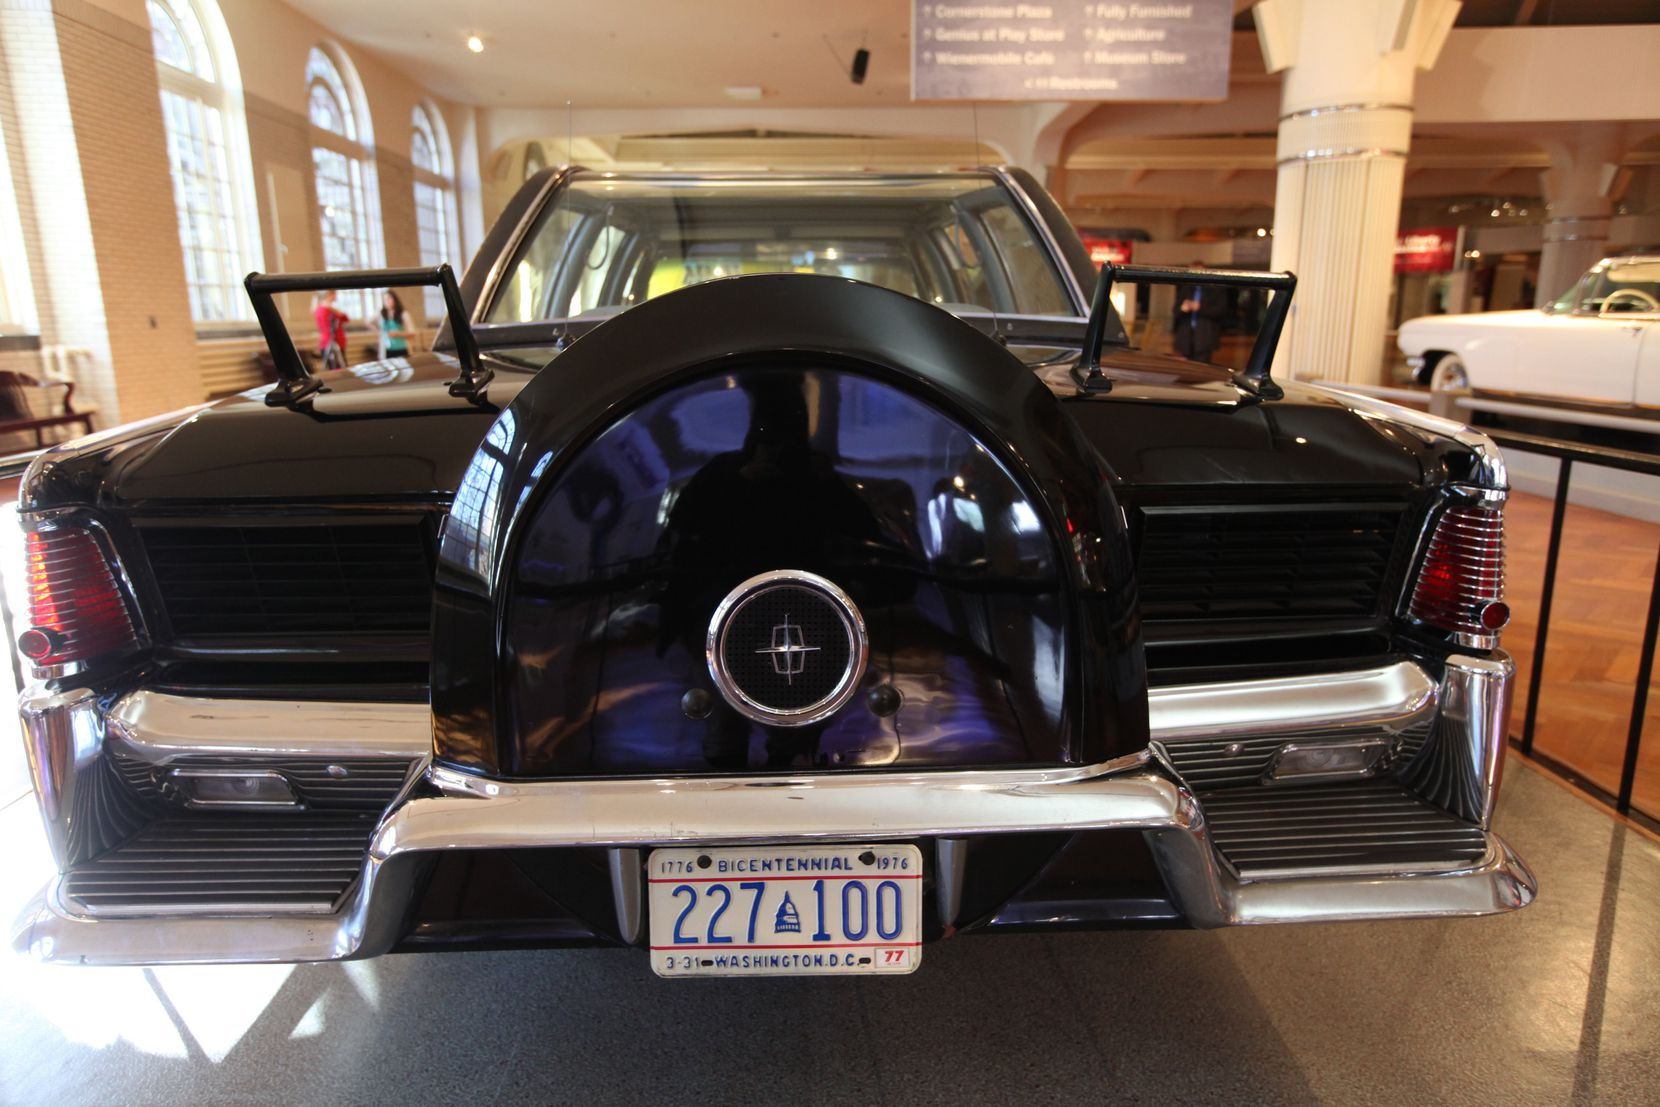 The Henry Ford Museum in Dearborn, Mich., displays the customized 1961 Lincoln Continental four-door convertible the president was riding in when he was assassinated.